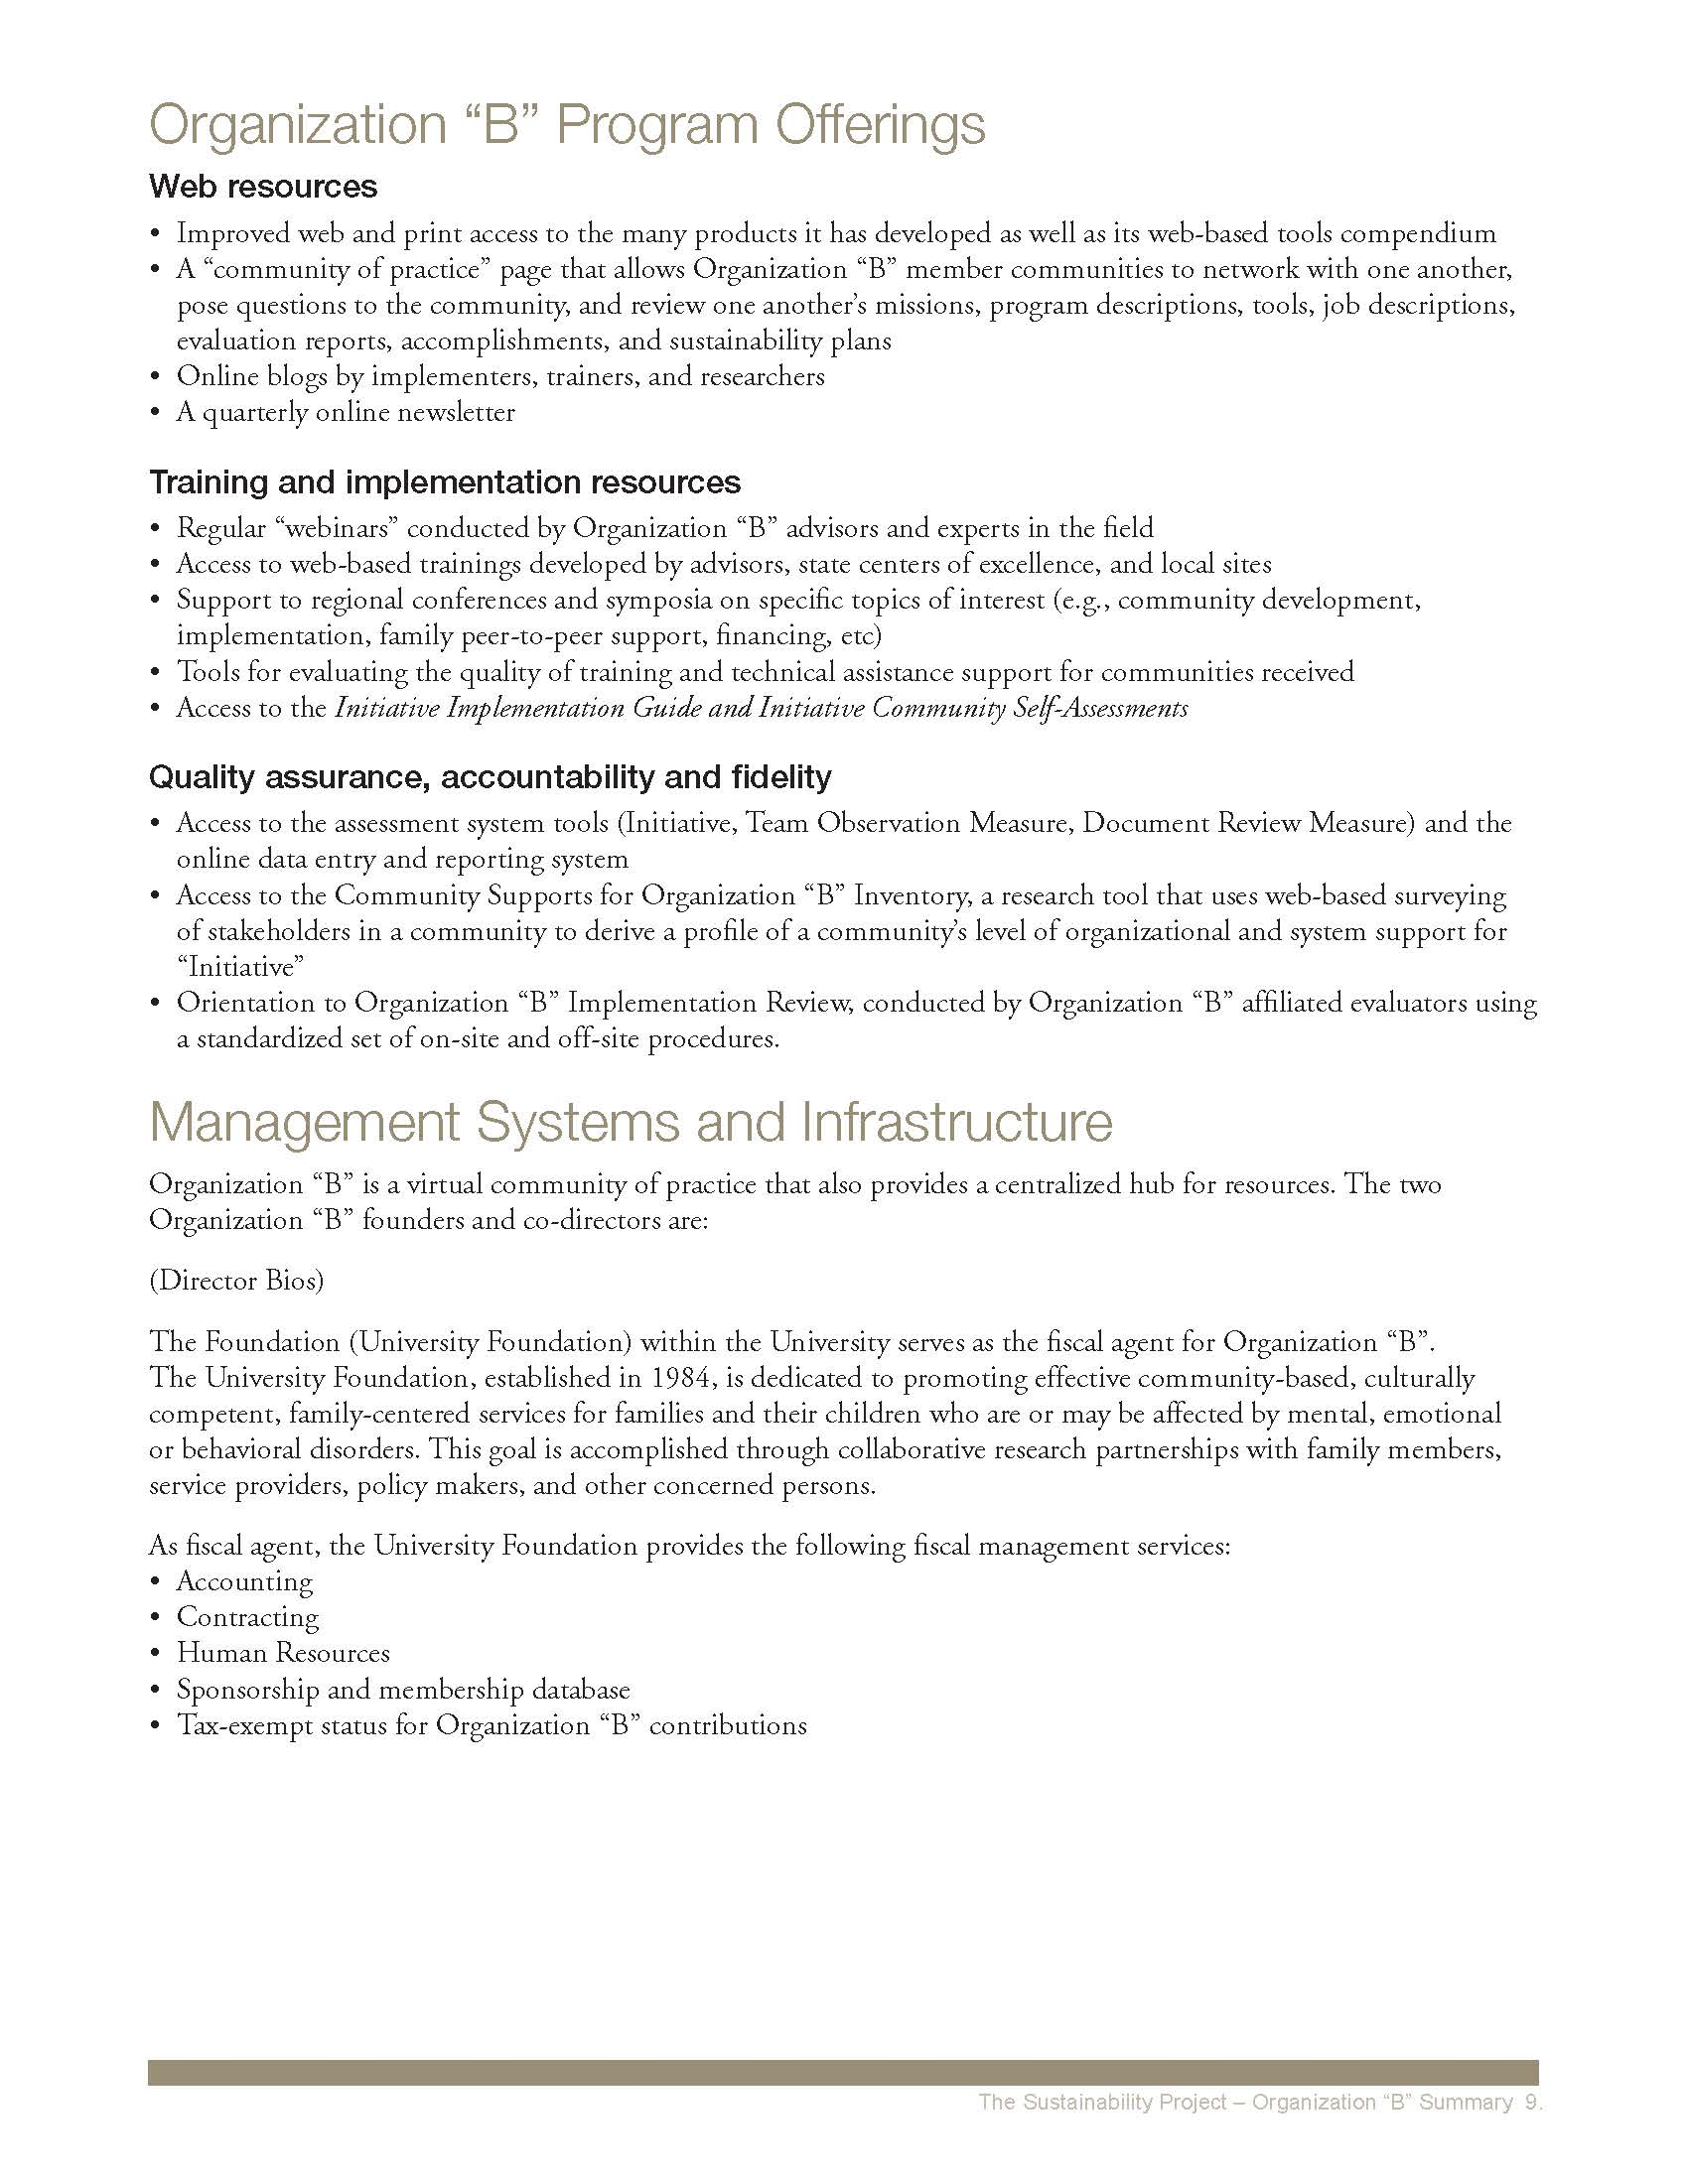 The Sustainability Project_Page_09.jpg